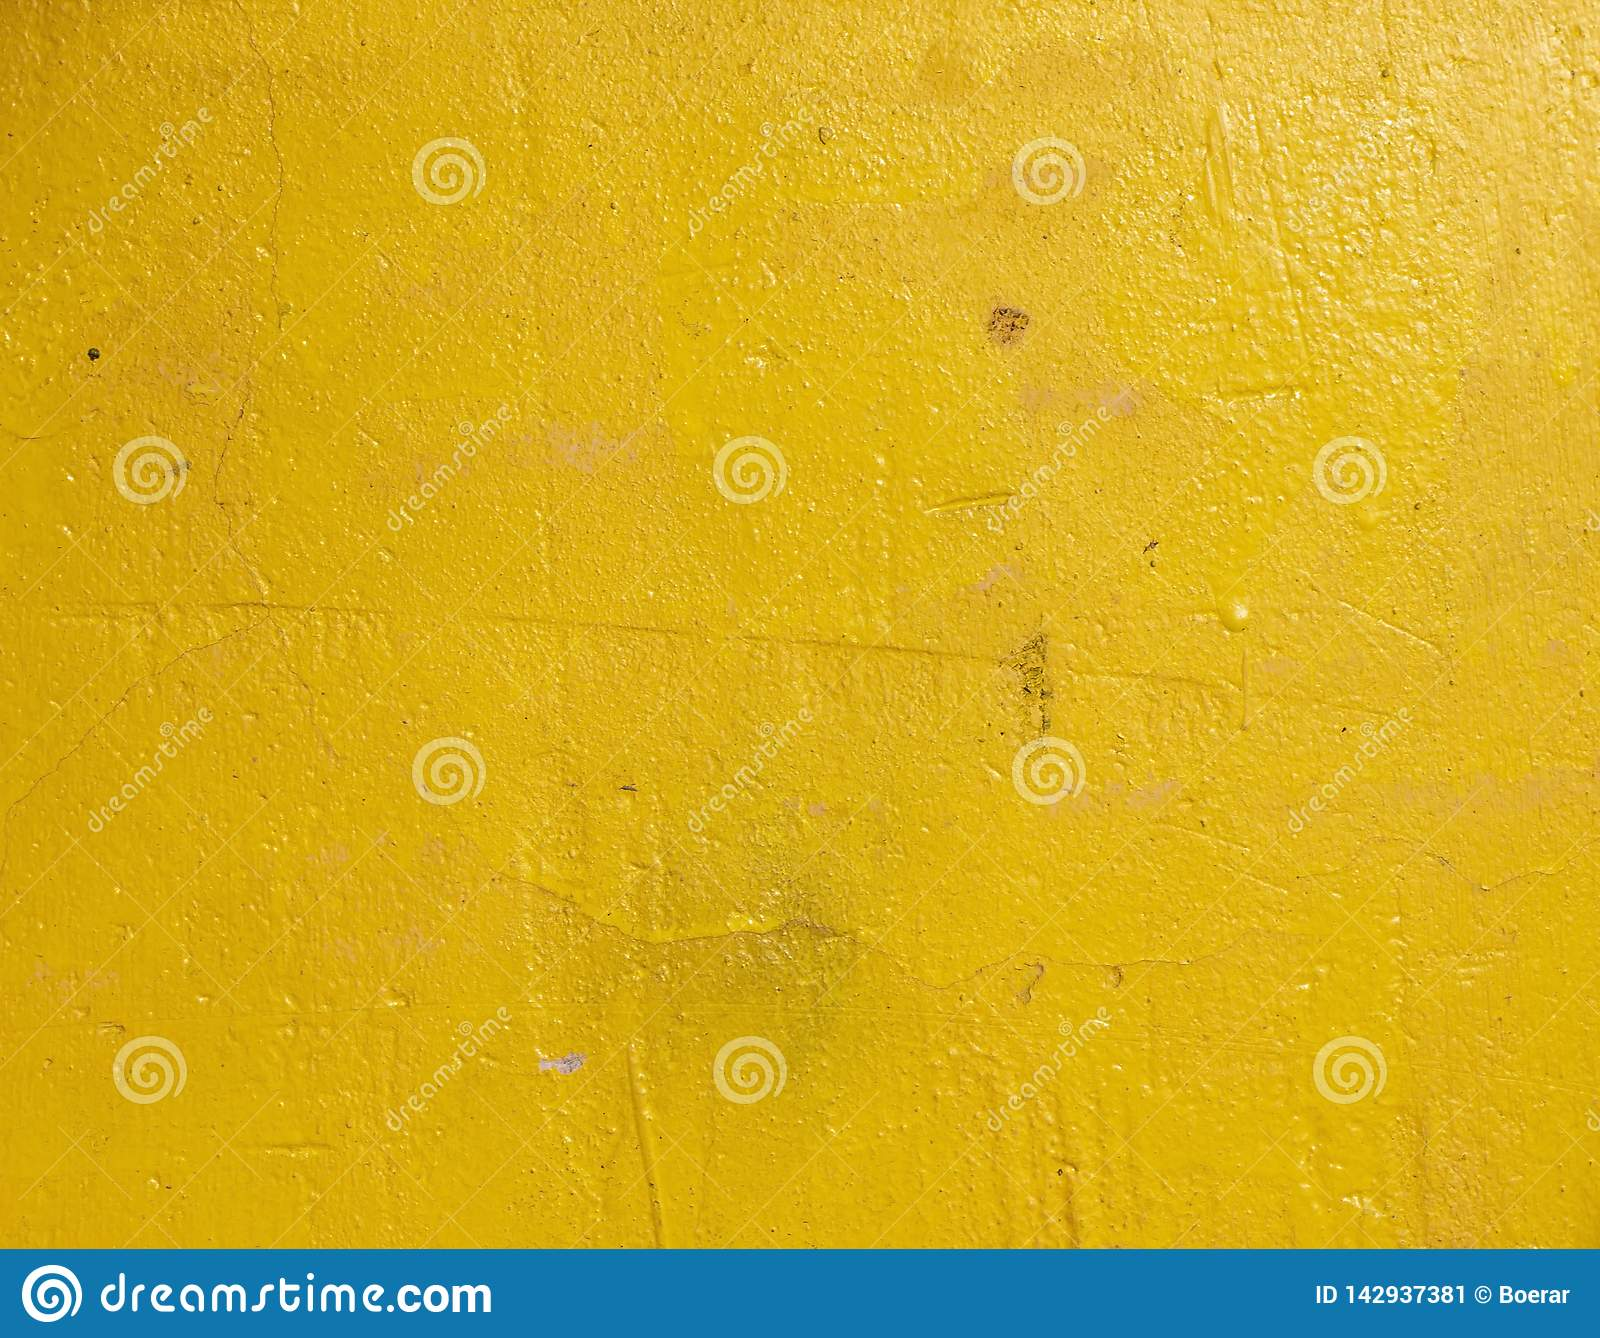 Old grunge cracked vintage light yellow concrete and cement mold texture wall or floor background